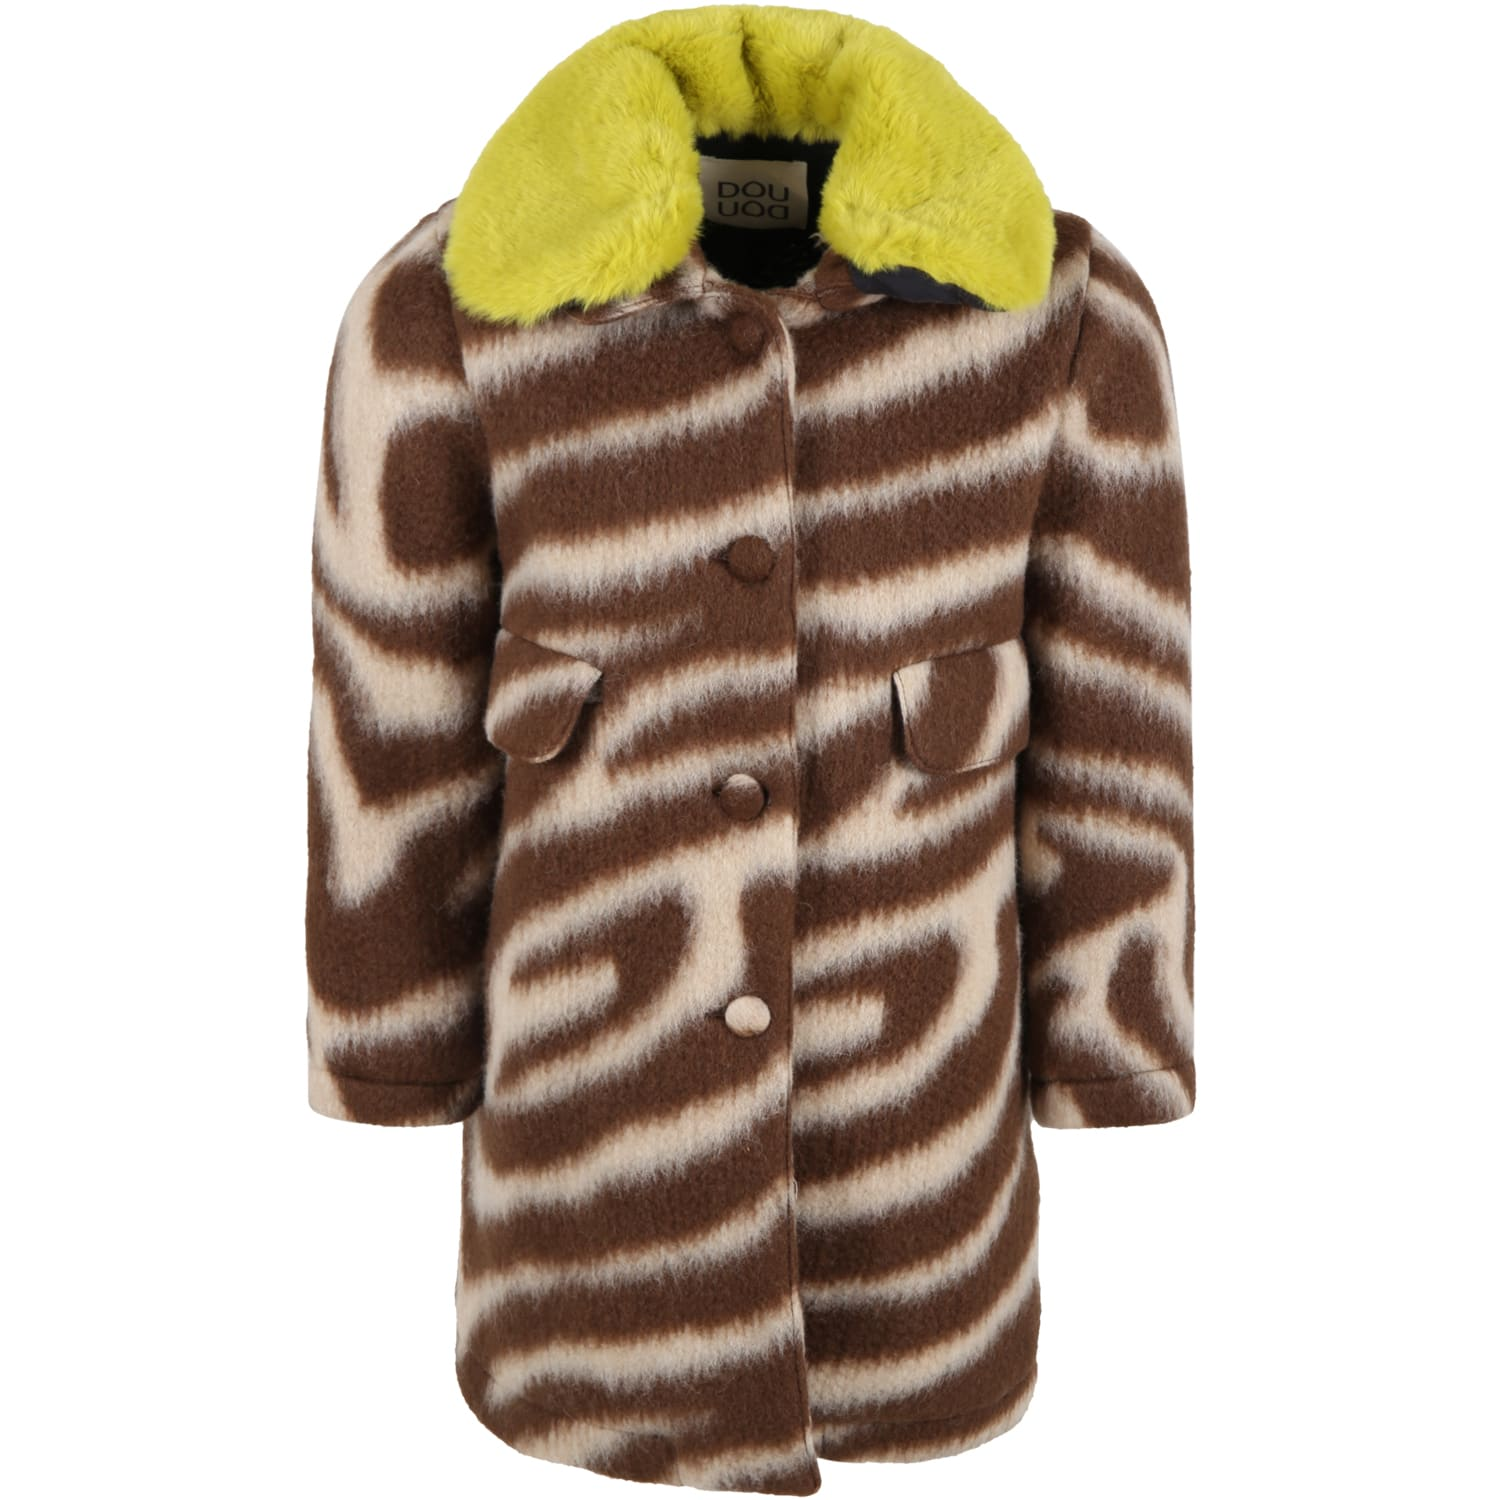 Brown Coat For Kids With Yellow Collar